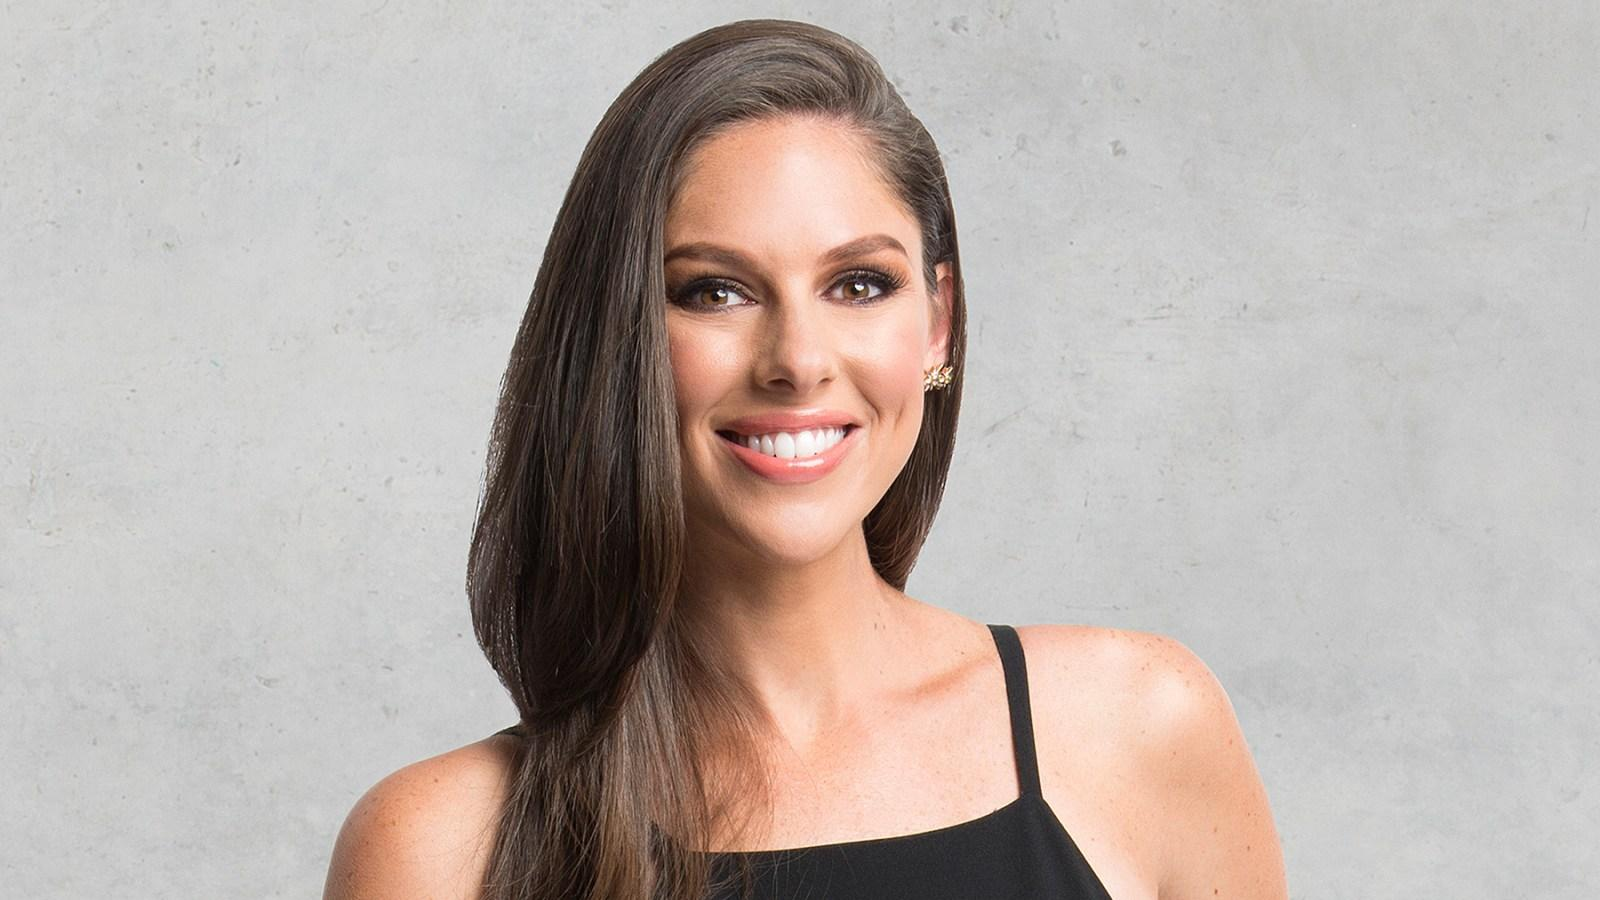 Abby Huntsman From 'The View' Announces She's Expecting Twins!